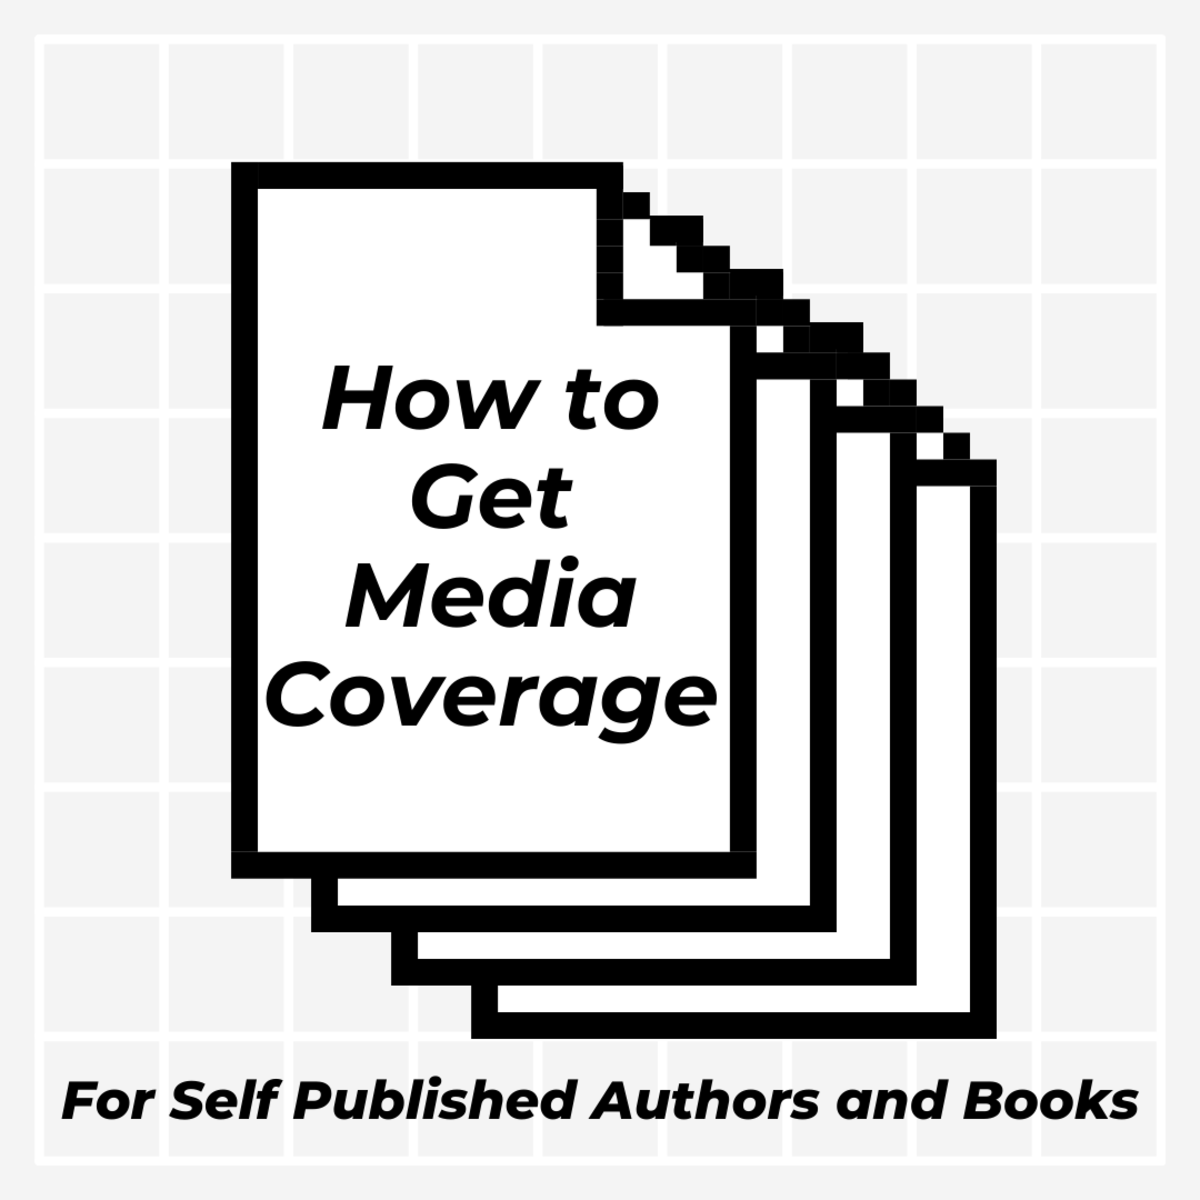 Self-published authors can have a tough time getting media coverage. Read on for tips on improving your chances of being considered.